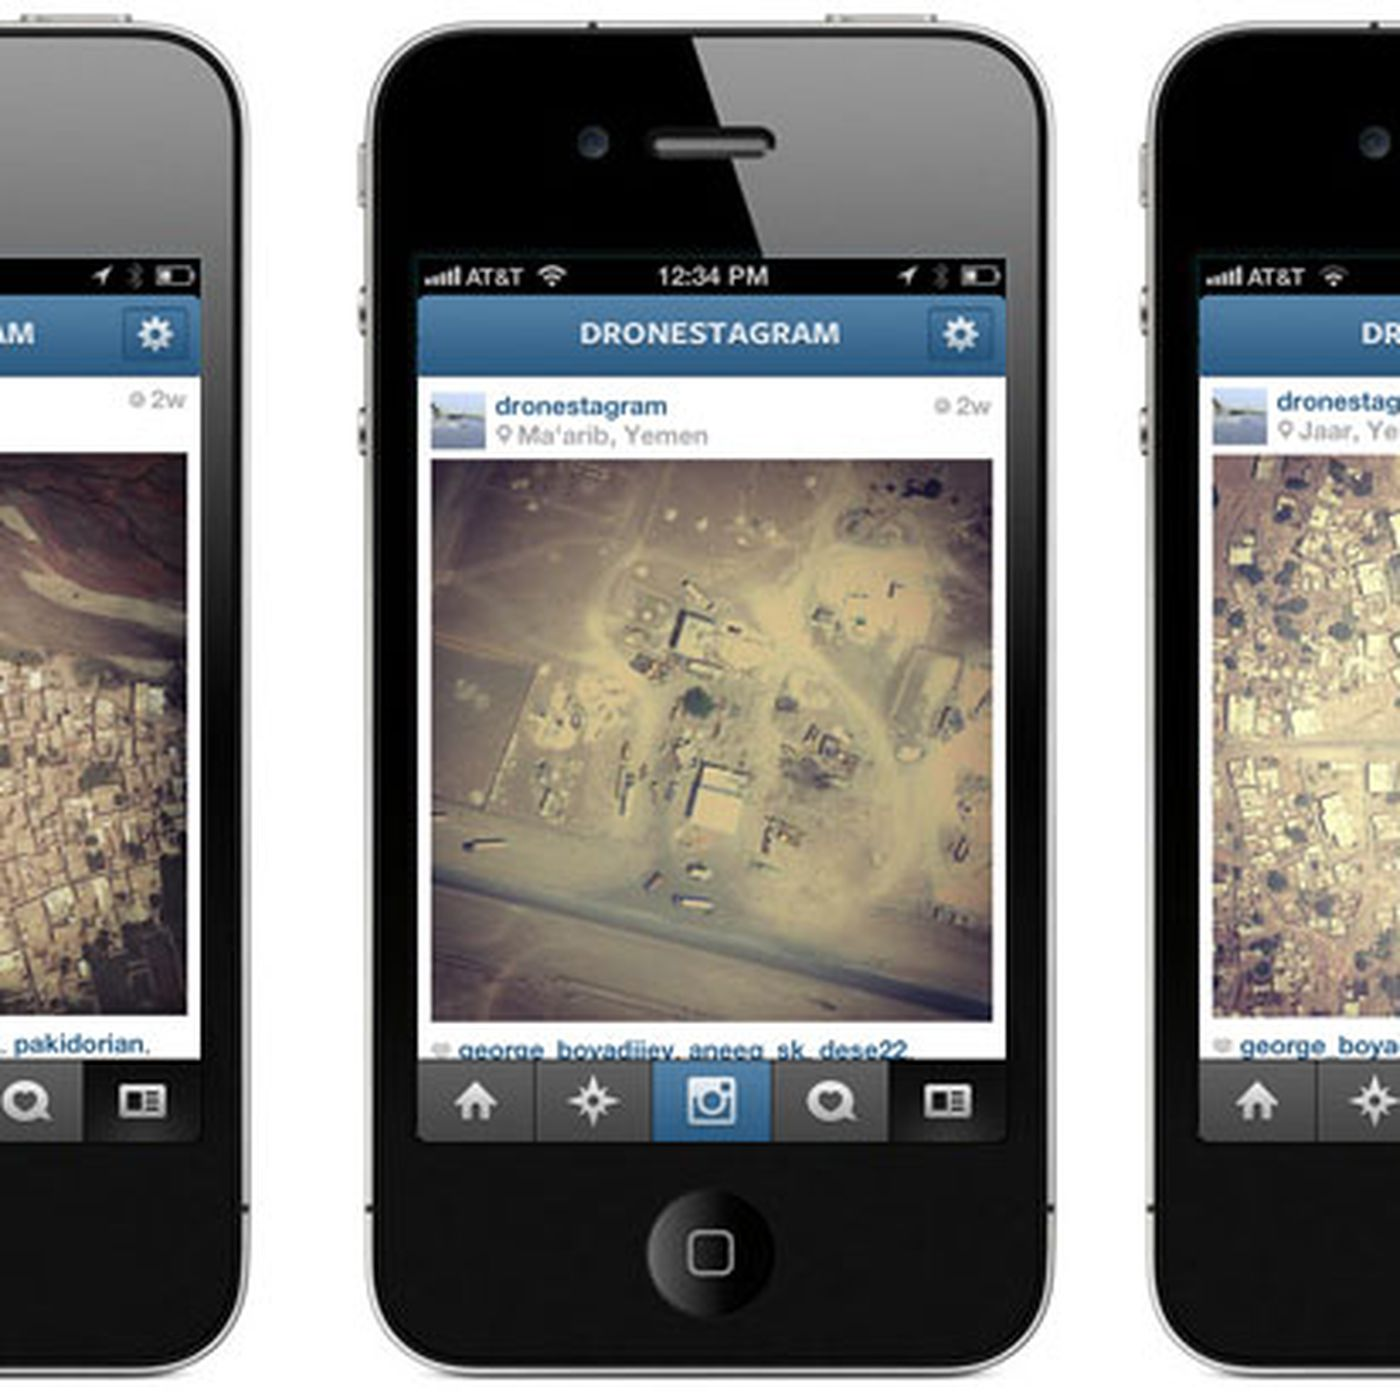 Dronestagram Filters Satellite Photos Of Us Drone Strikes For